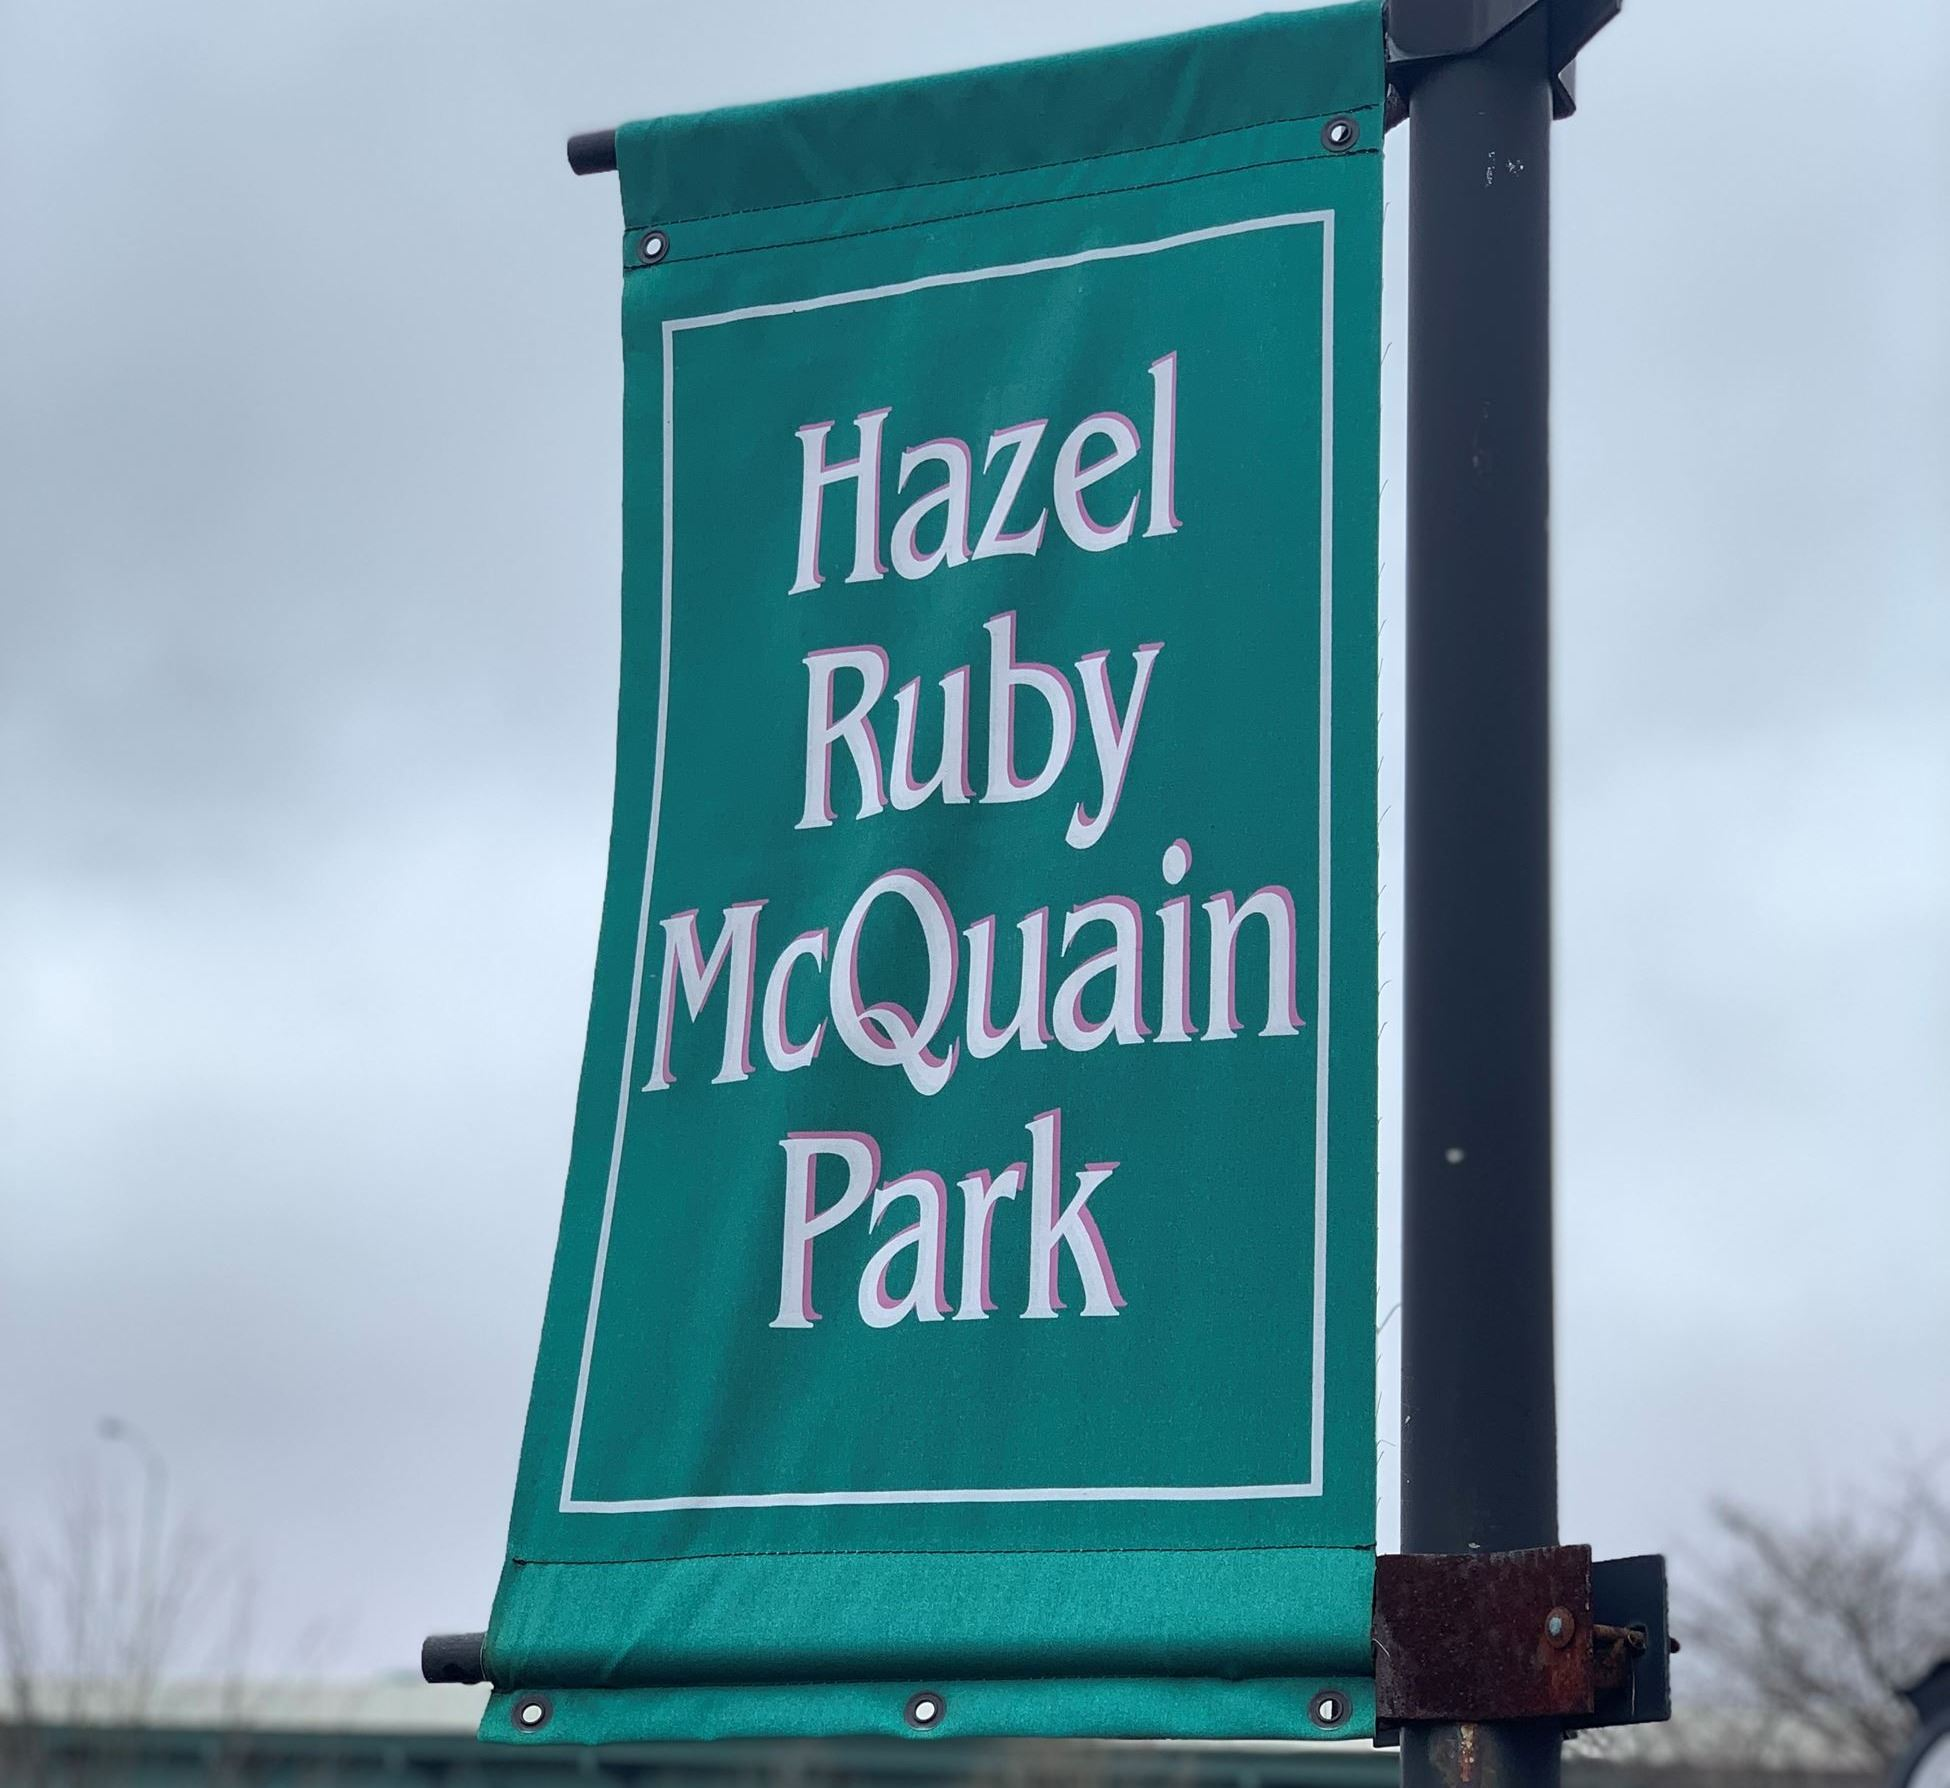 A picture of a banner at Hazel Ruby McQuain Park.